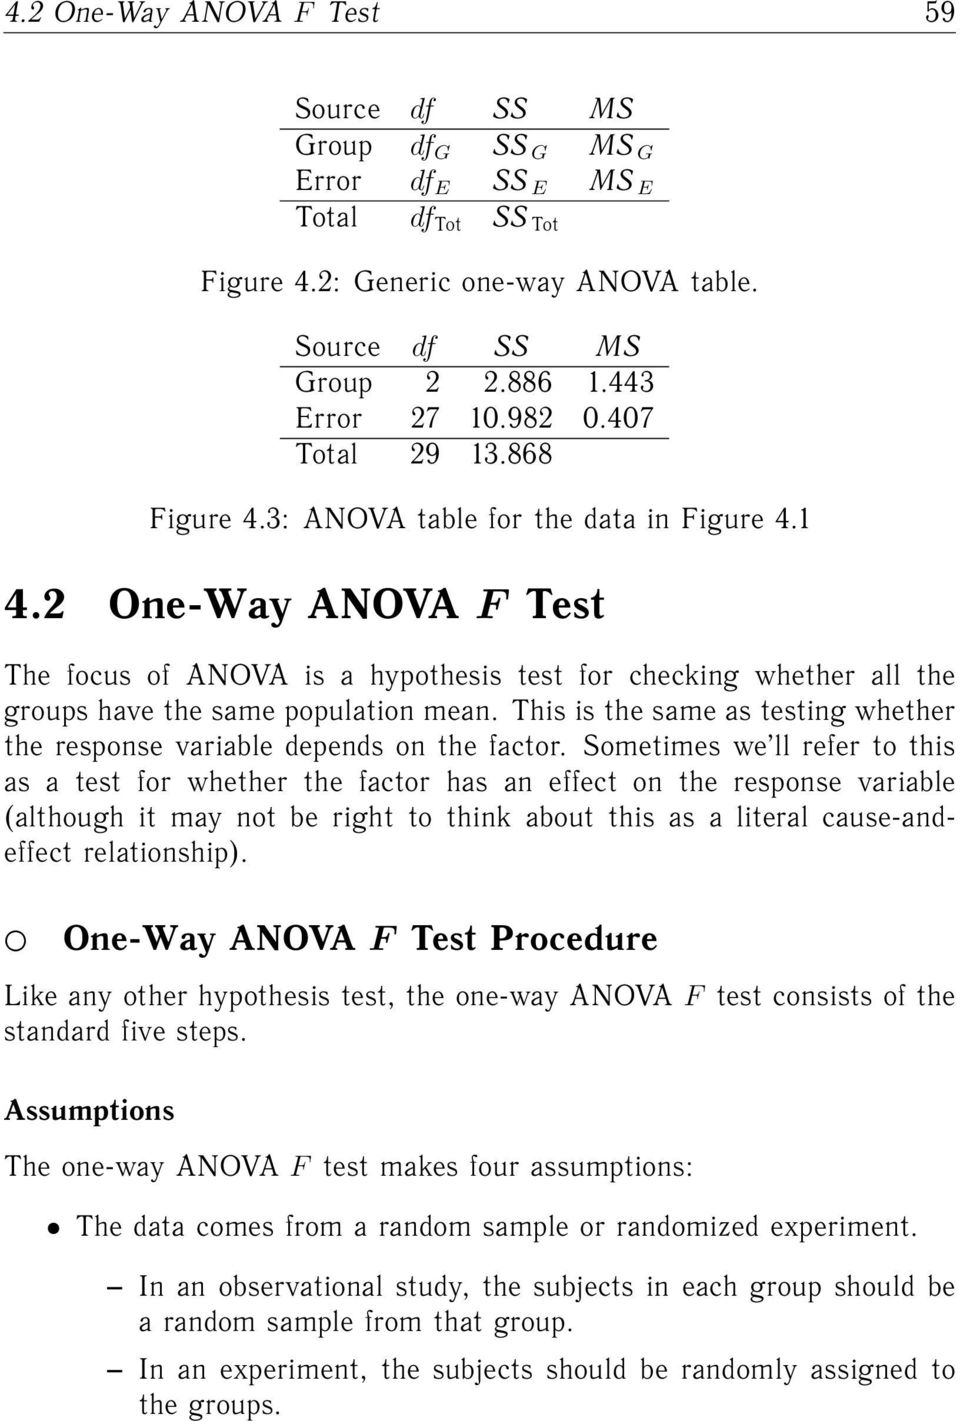 2 One-Way ANOVA F Test The focus of ANOVA is a hypothesis test for checking whether all the groups have the same population mean.